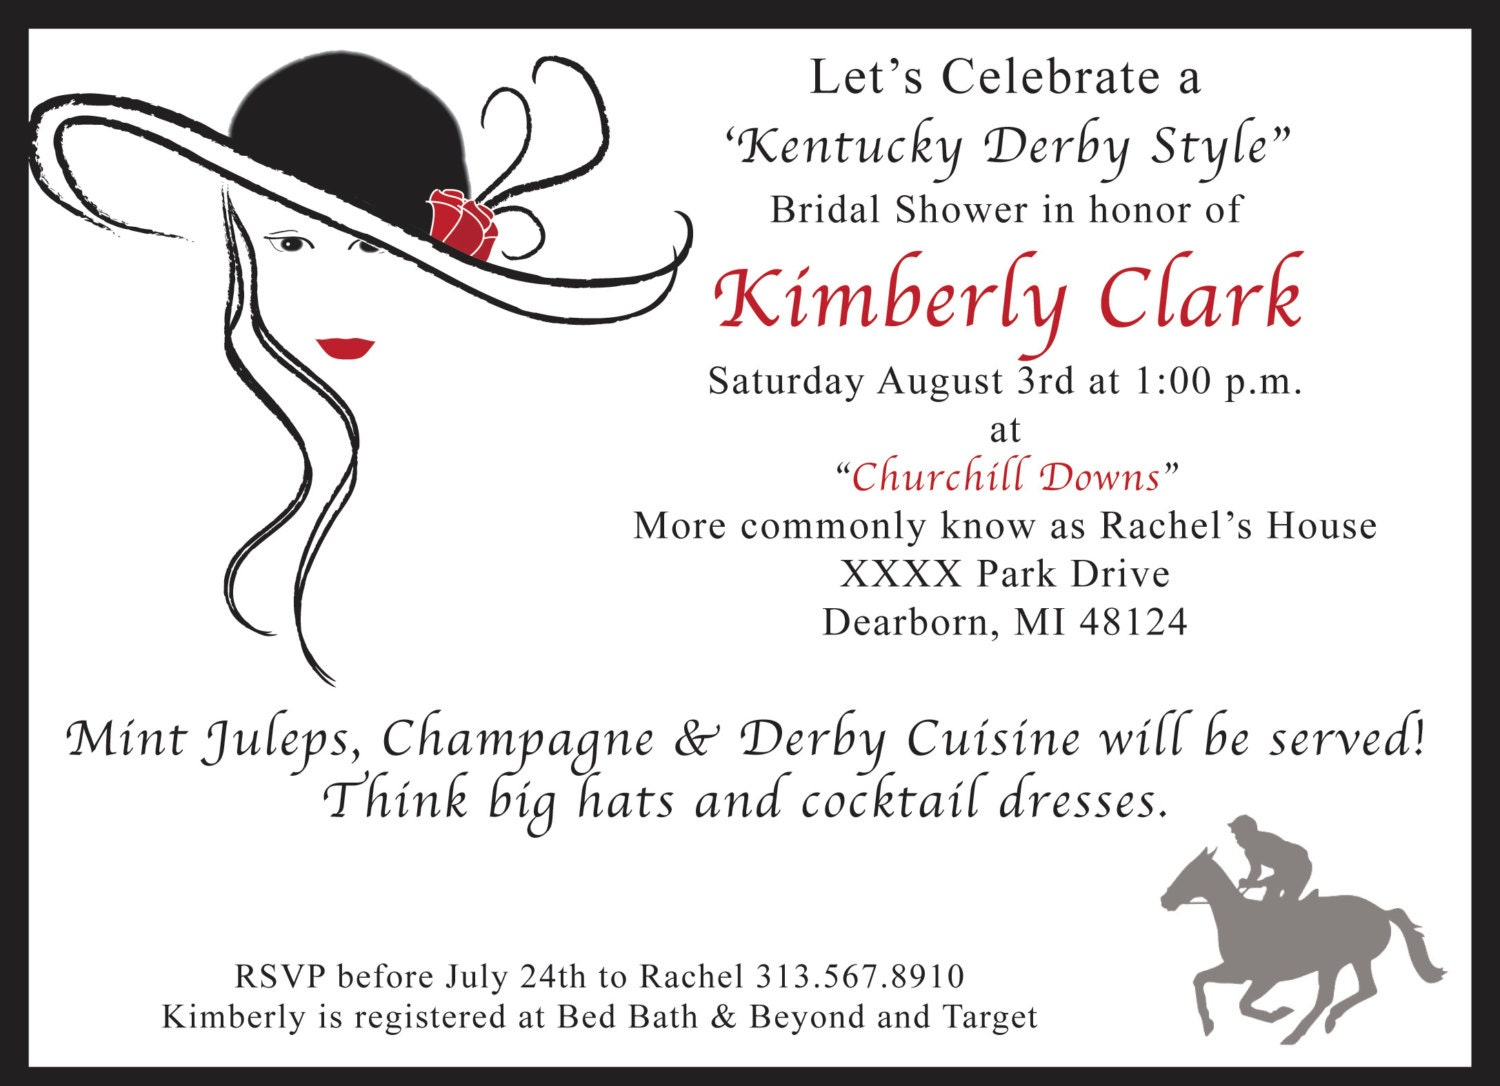 Kentucky Derby Bridal Shower Invitations and get inspiration to create nice invitation ideas